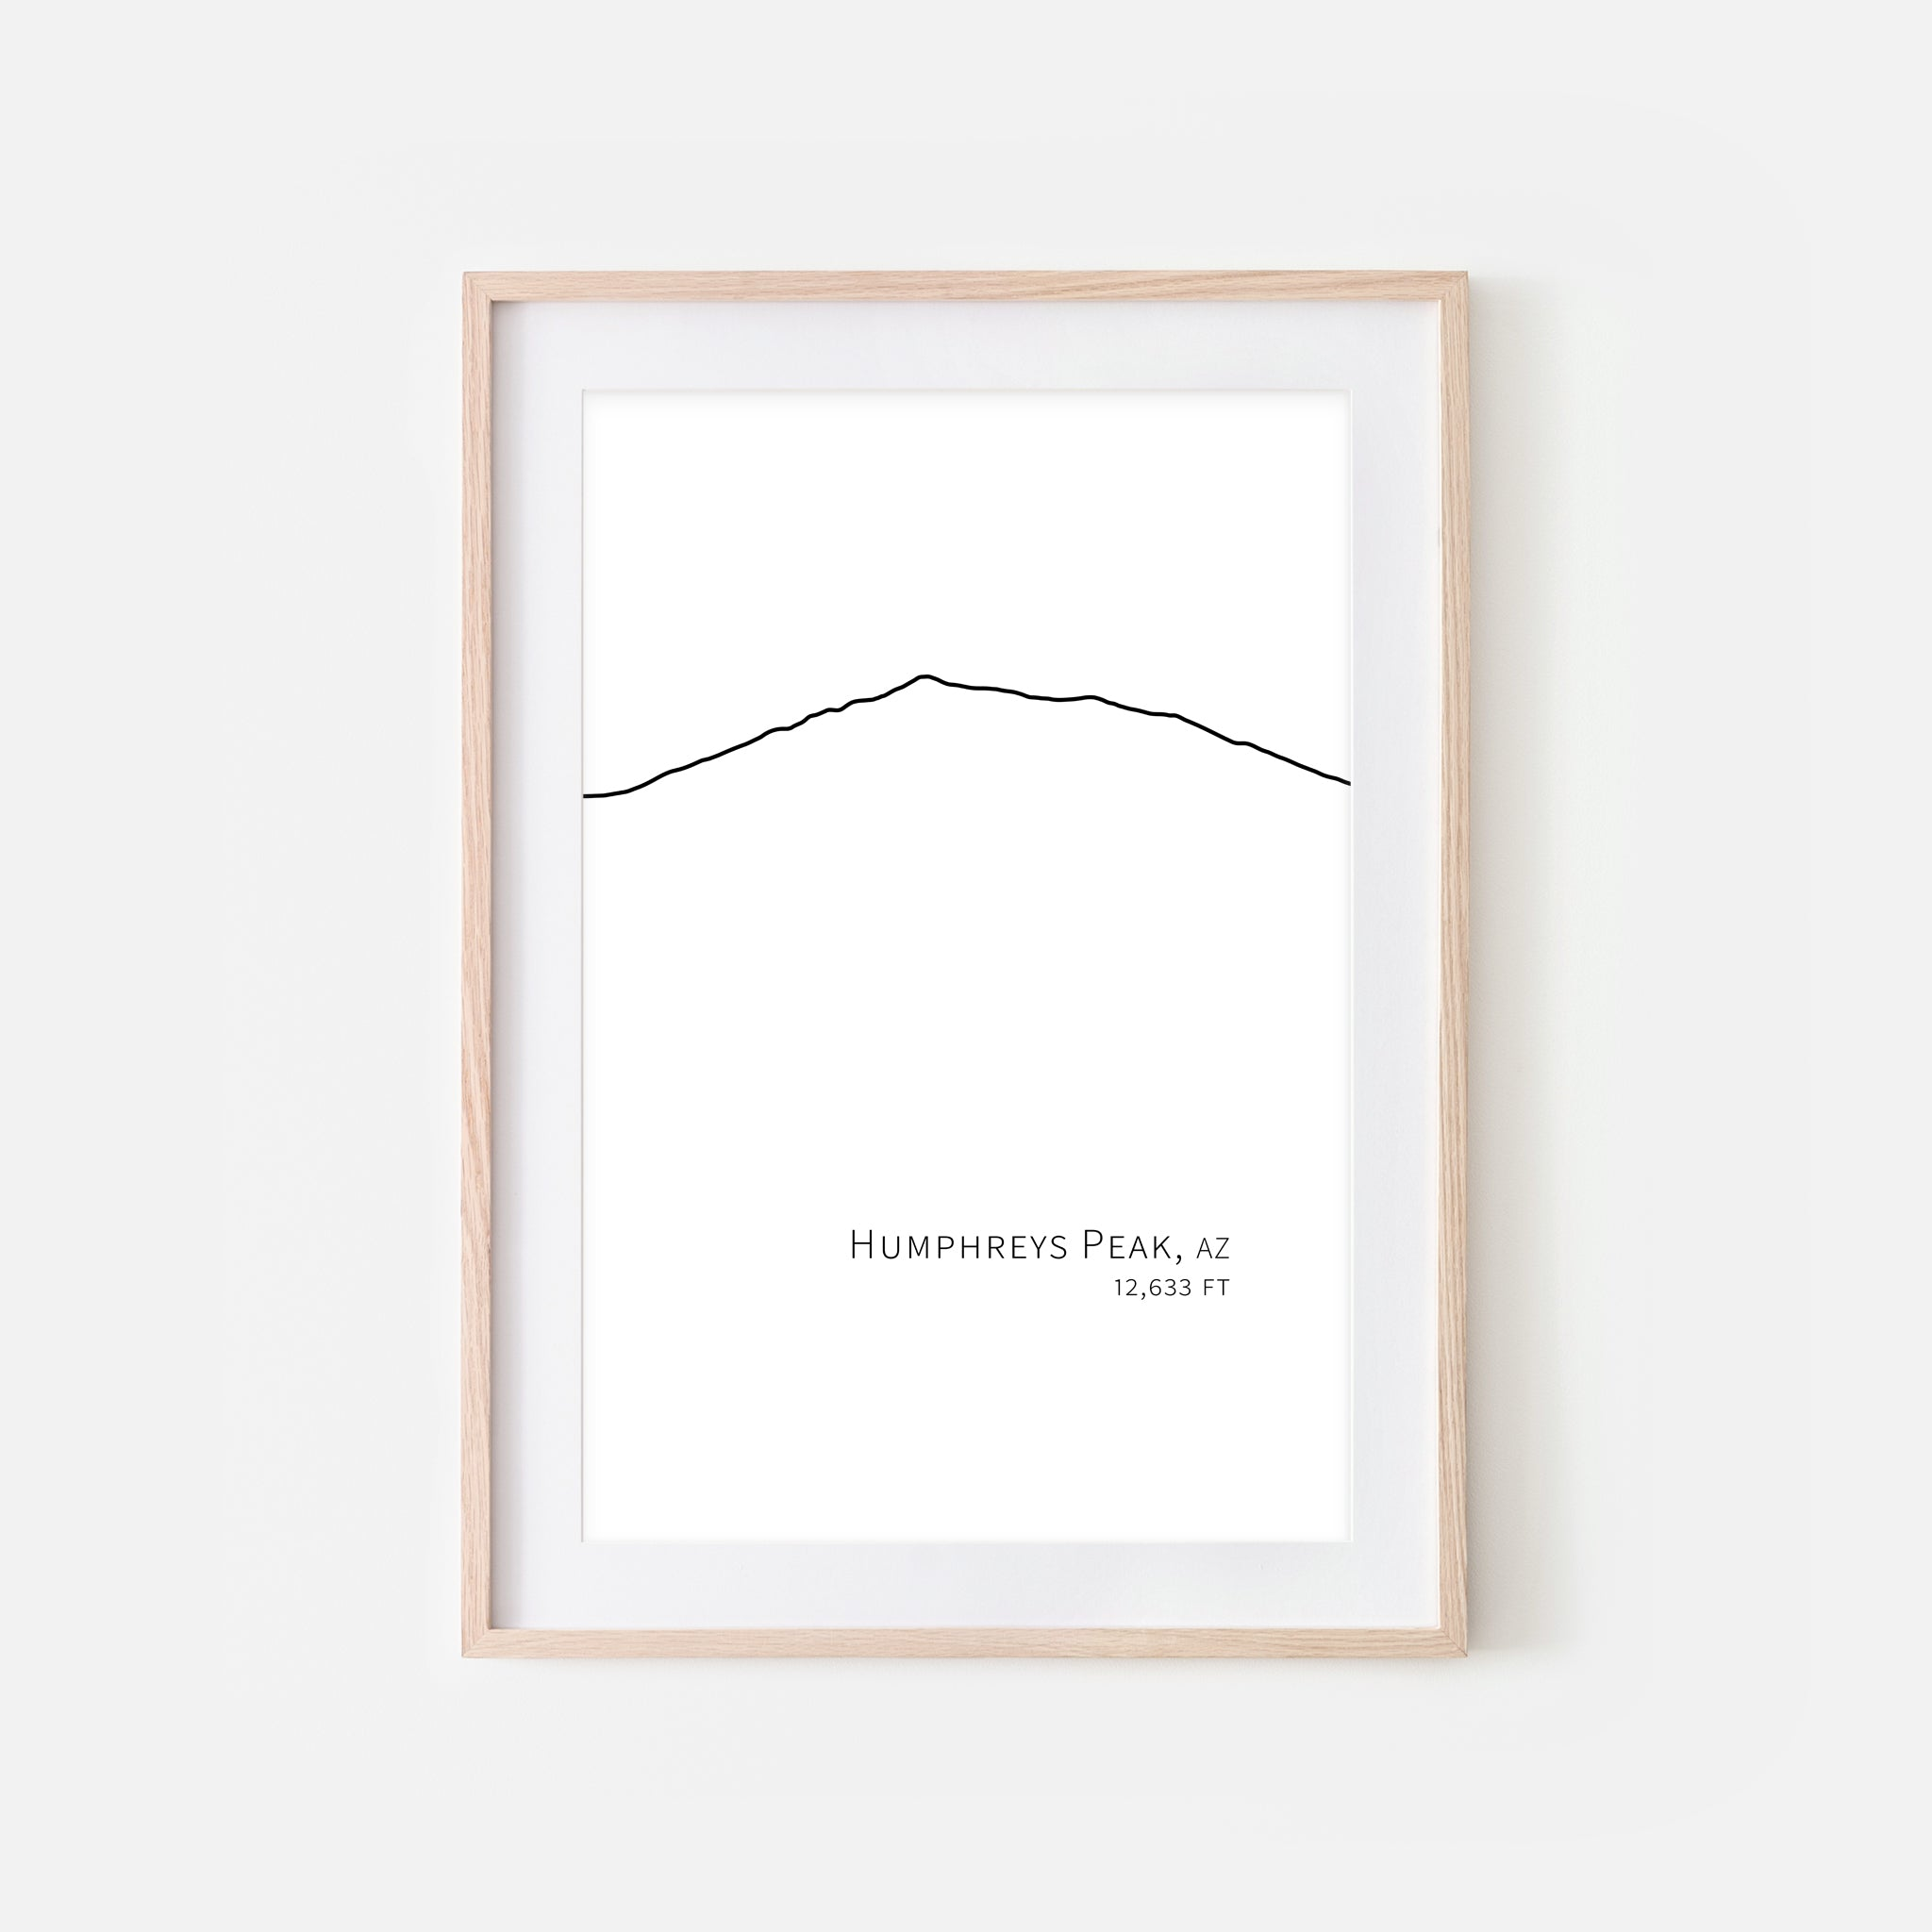 Humphreys Peak Arizona AZ USA Mountain Wall Art Print - Minimalist Peak Summit Elevation Contour One Line Drawing - Abstract Landscape - Black and White Home Decor Climbing Hiking Decor - Large Small Shipped Paper Print or Poster - OR - Downloadable Art Print DIY Digital Printable Instant Download - By Happy Cat Prints